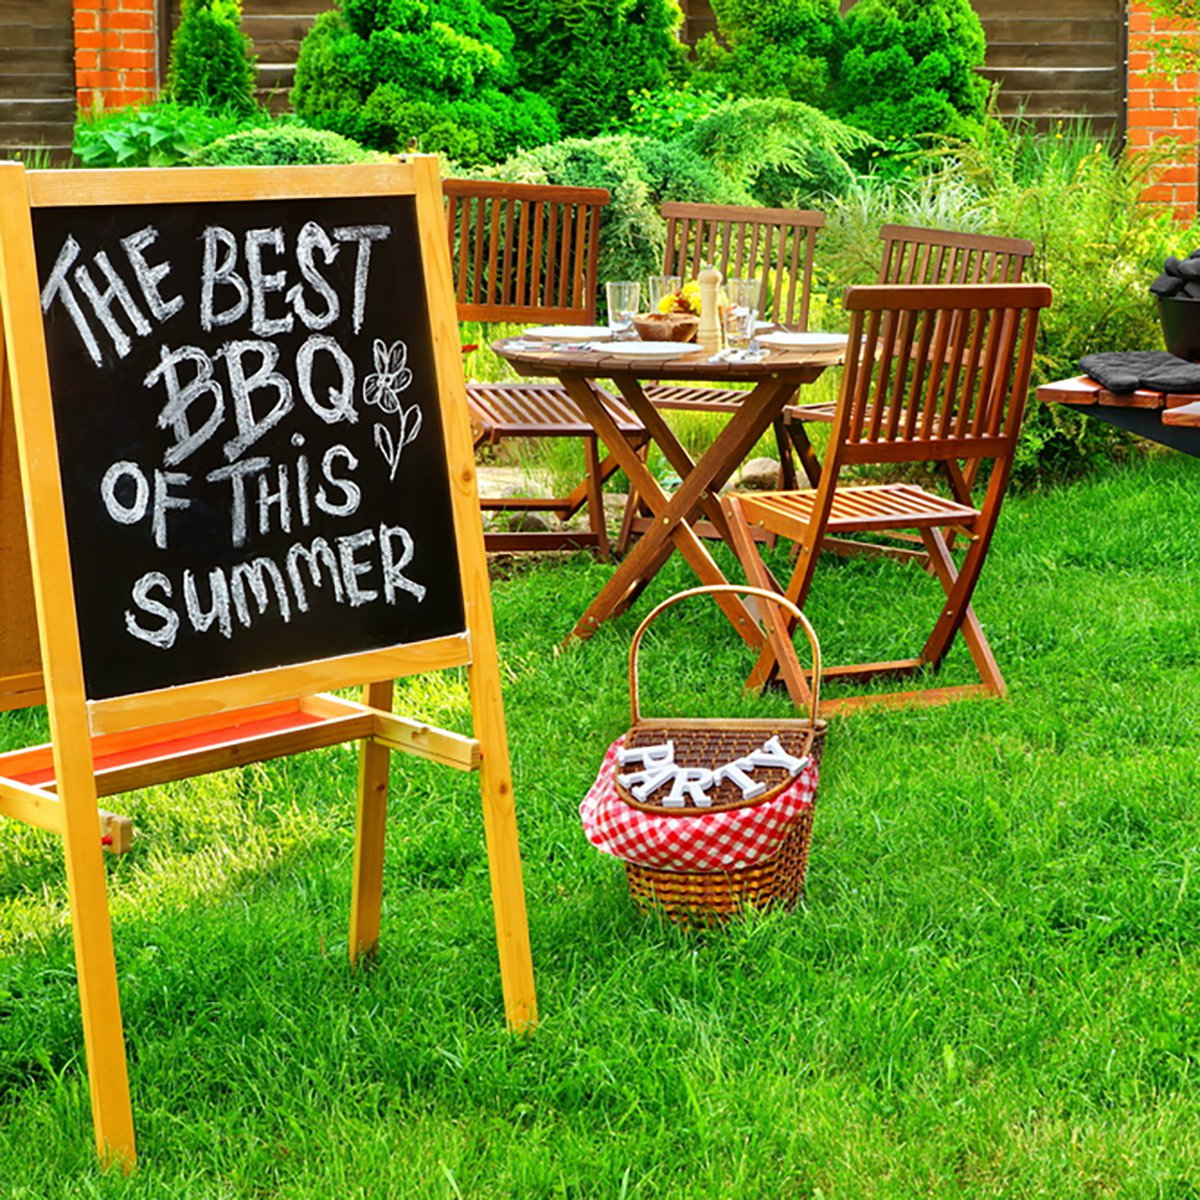 11 Insanely Smart Ideas For Your Backyard Party Taste Of Home regarding 15 Some of the Coolest Ways How to Build Summer Backyard Ideas